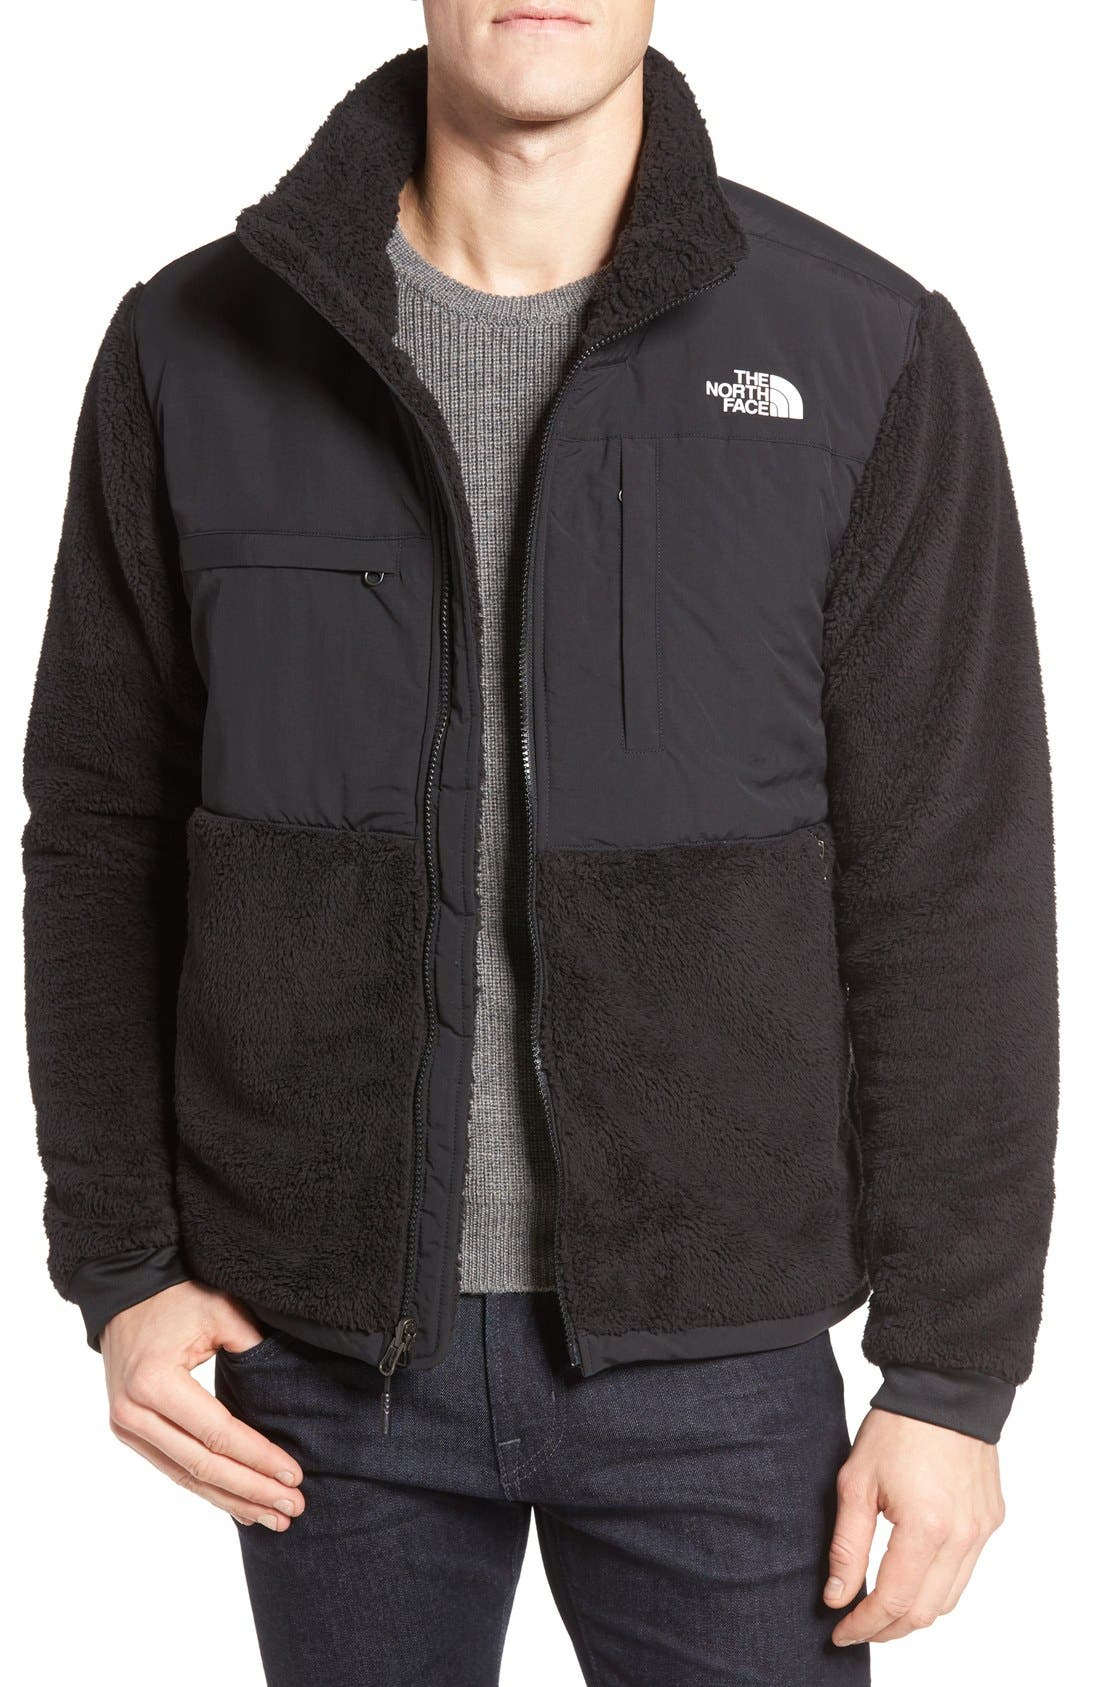 Novelty Denali Jacket,                         Main,                         color, Tnf Black Sherpa/ Tnf Black